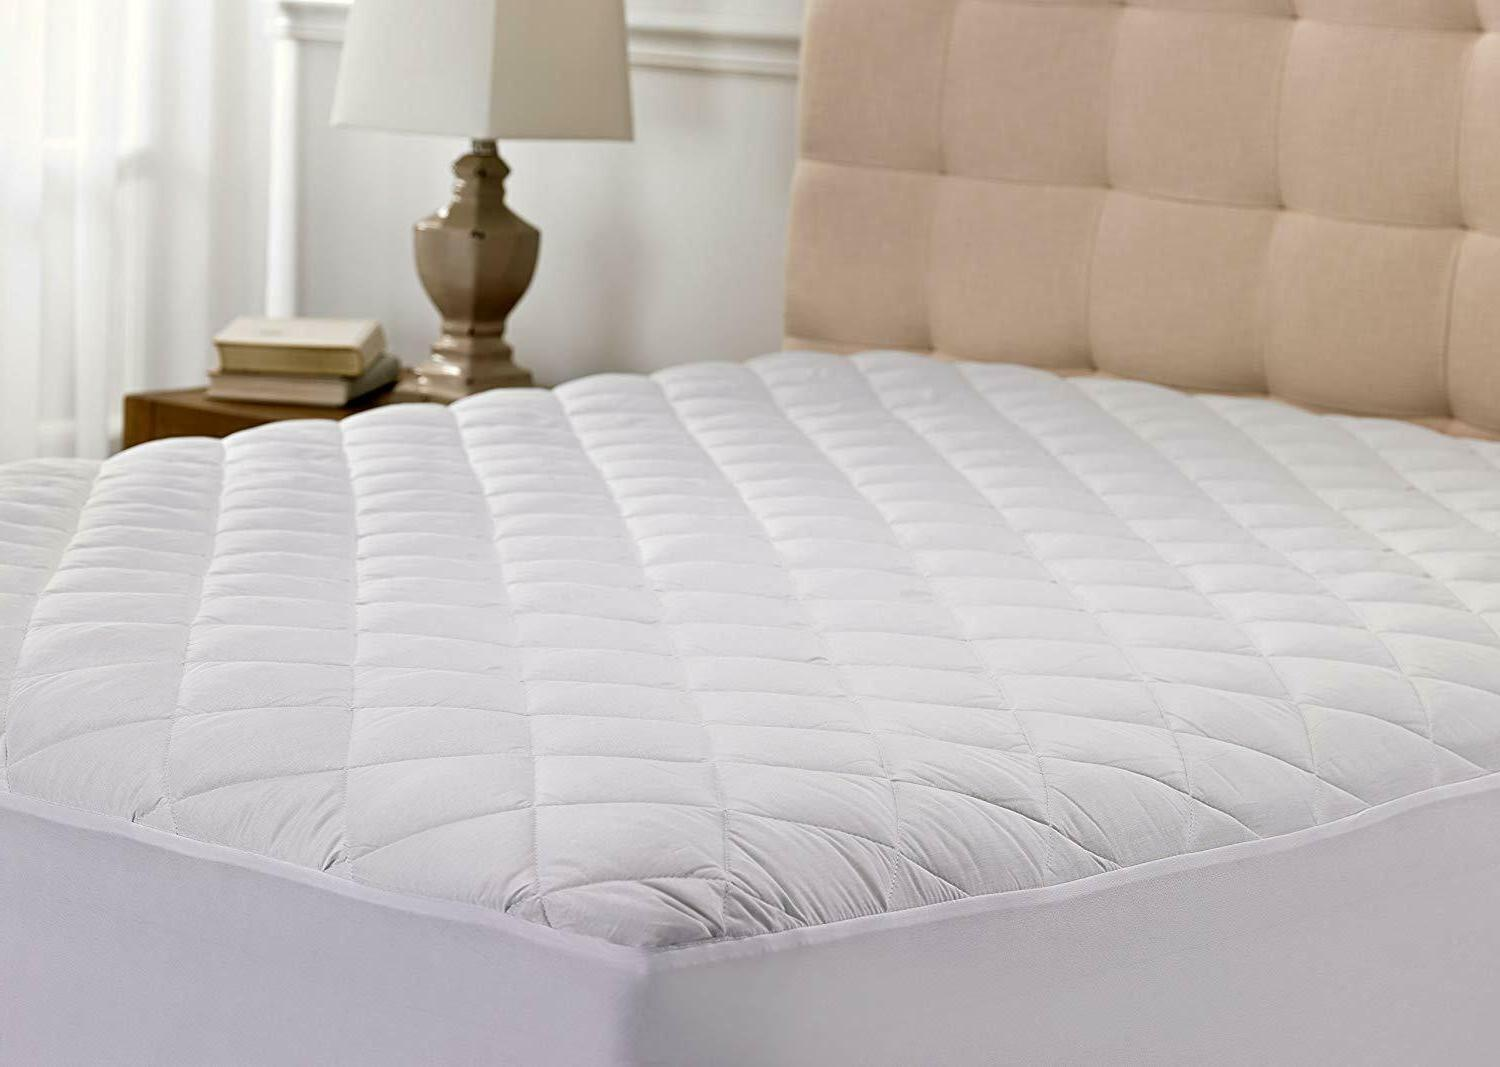 mattress pad hypoallergenic quilted stretch to fit